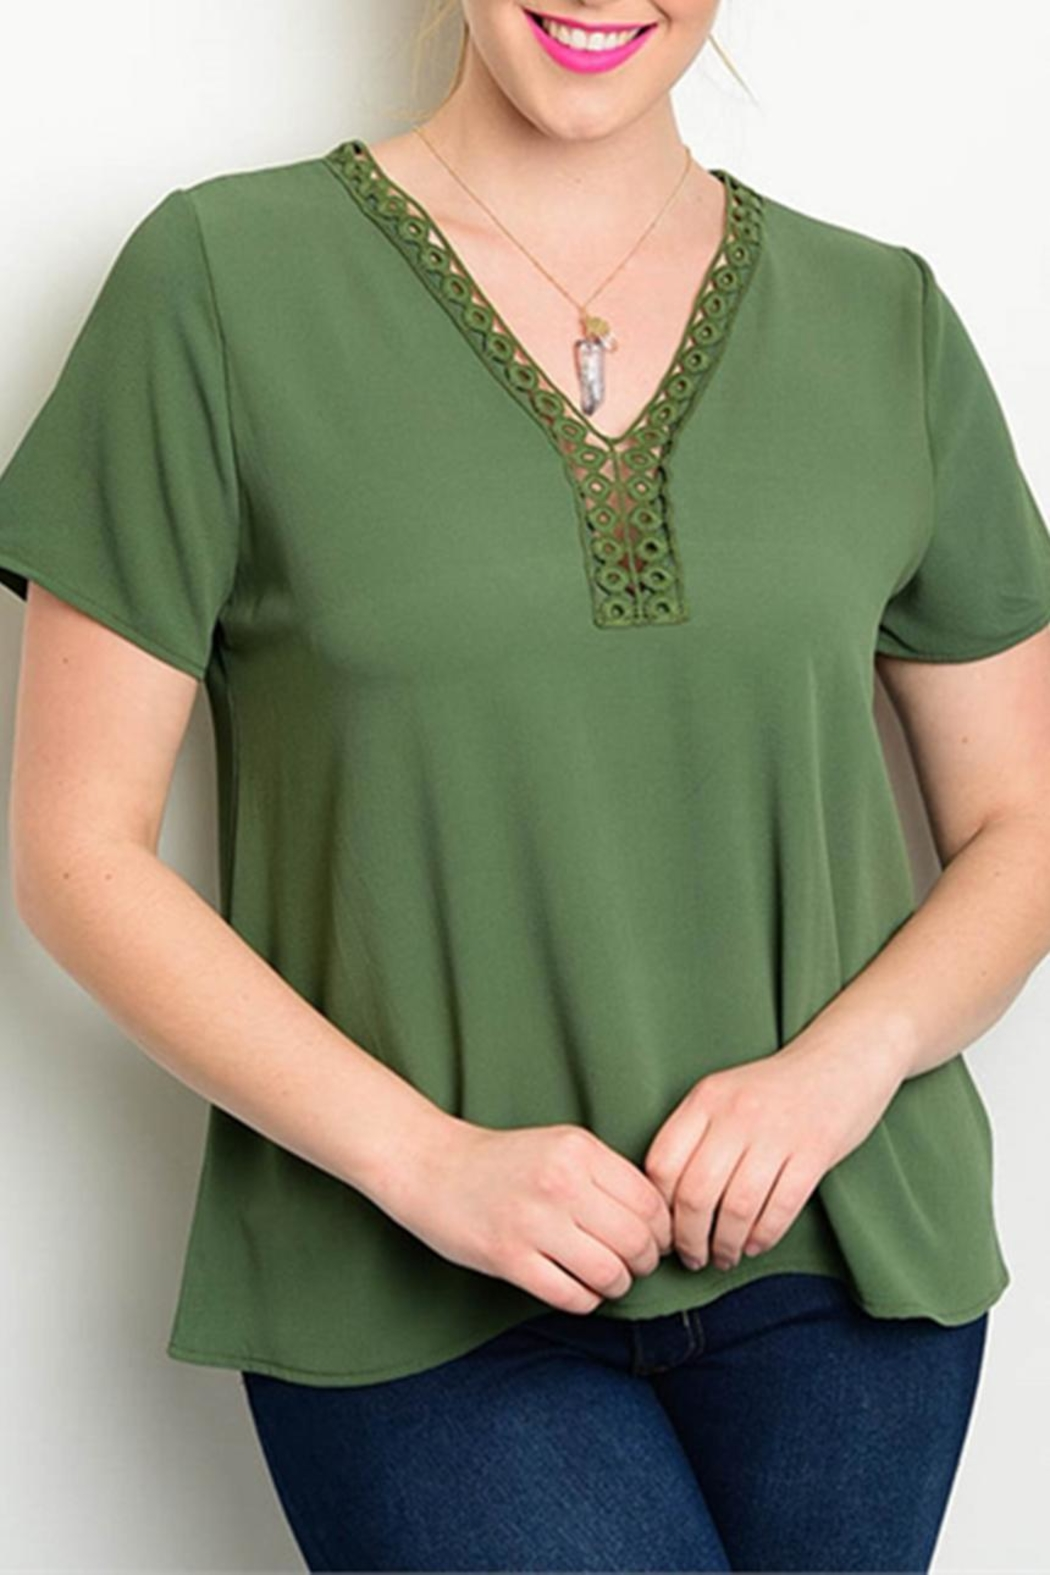 Zenobia Plus-Sized Green Top - Main Image